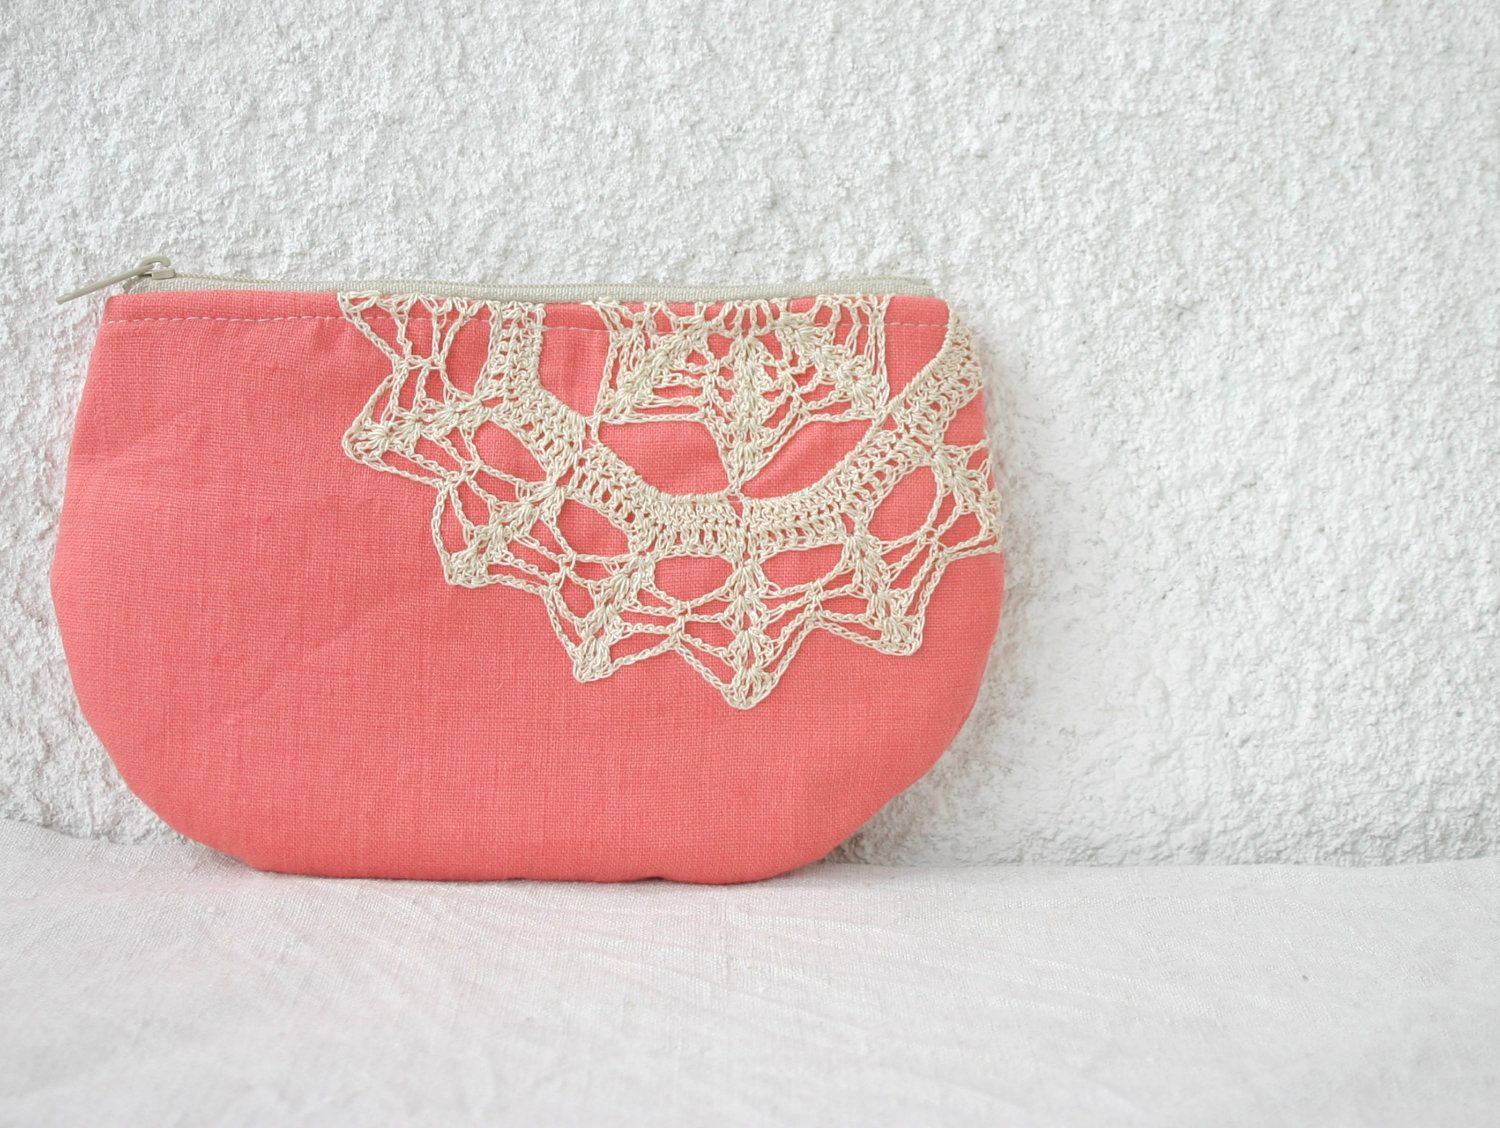 Linen and vintage doily small clutch